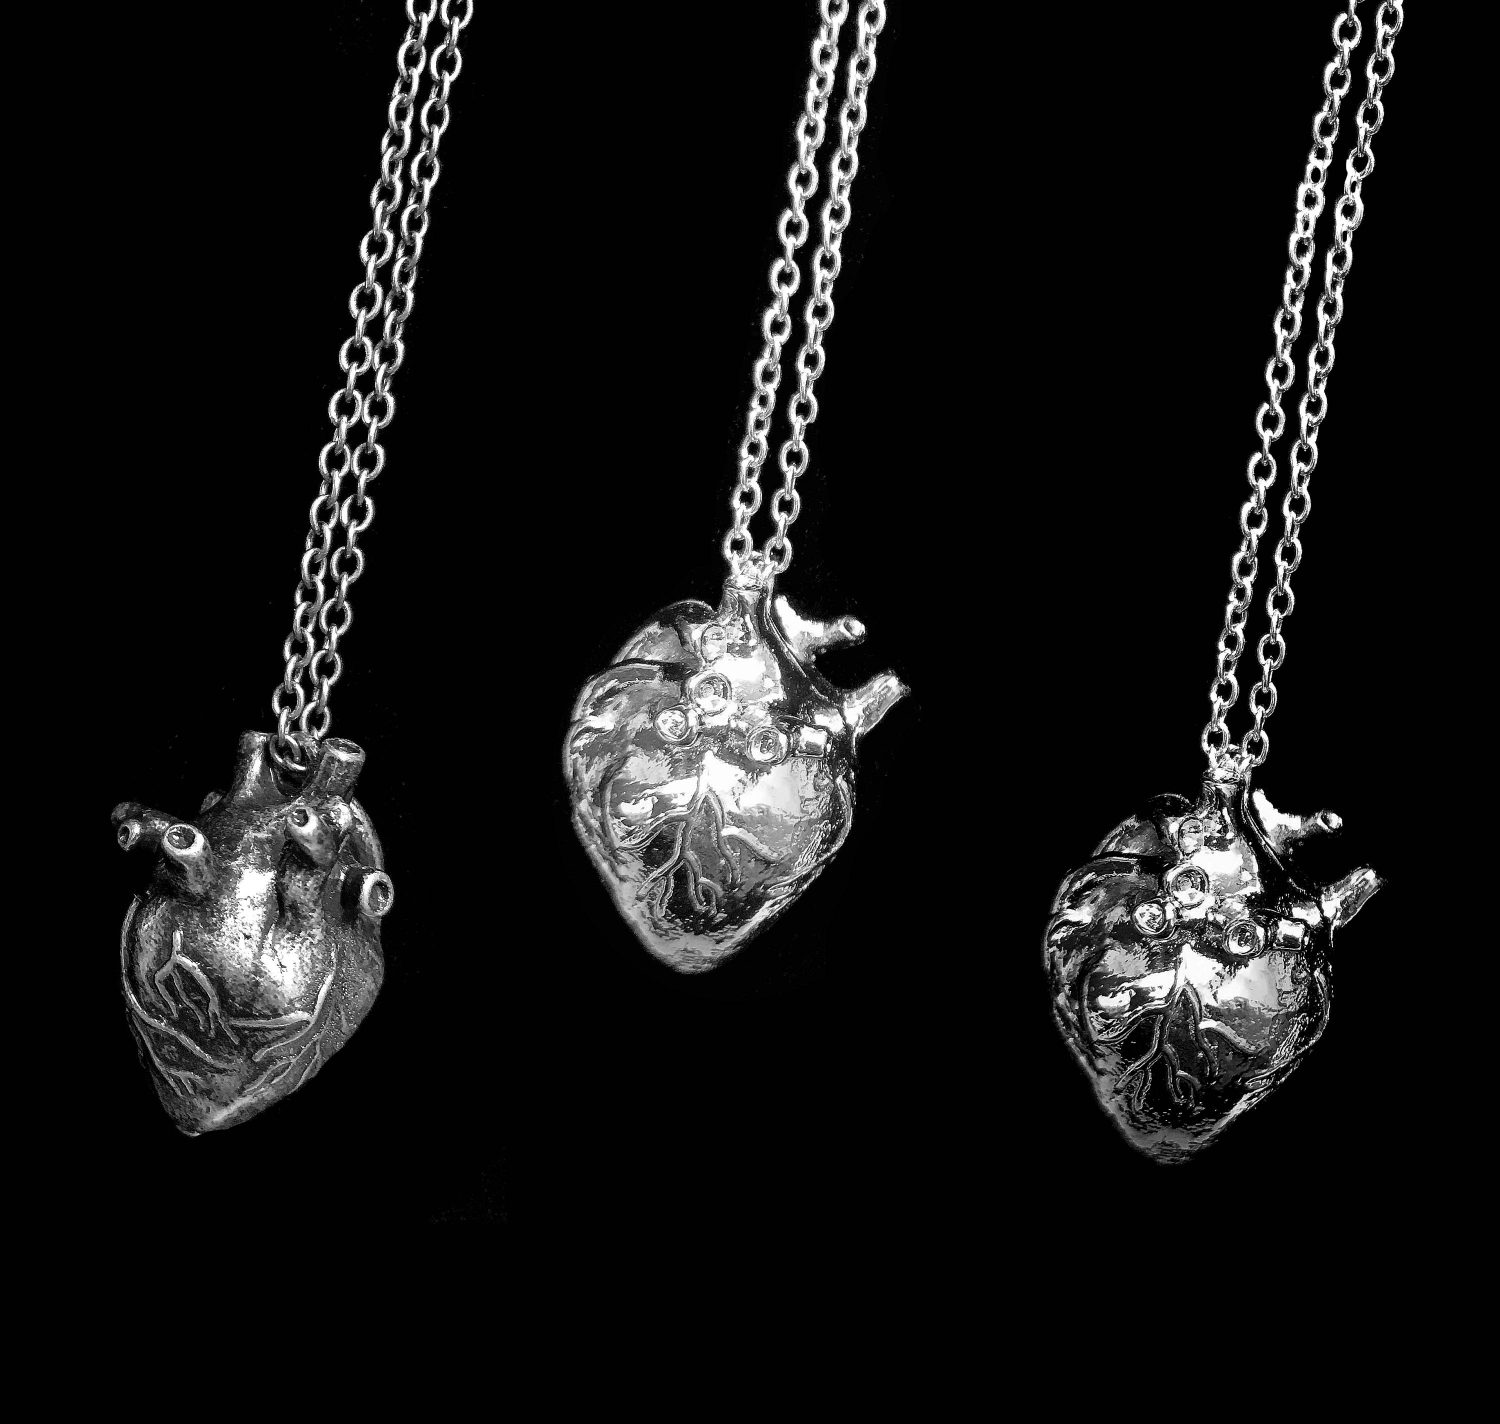 Three Dimensional Anatomical Heart Necklace Select Your Finish Circuit Board Glass Pendant Photo Keychain